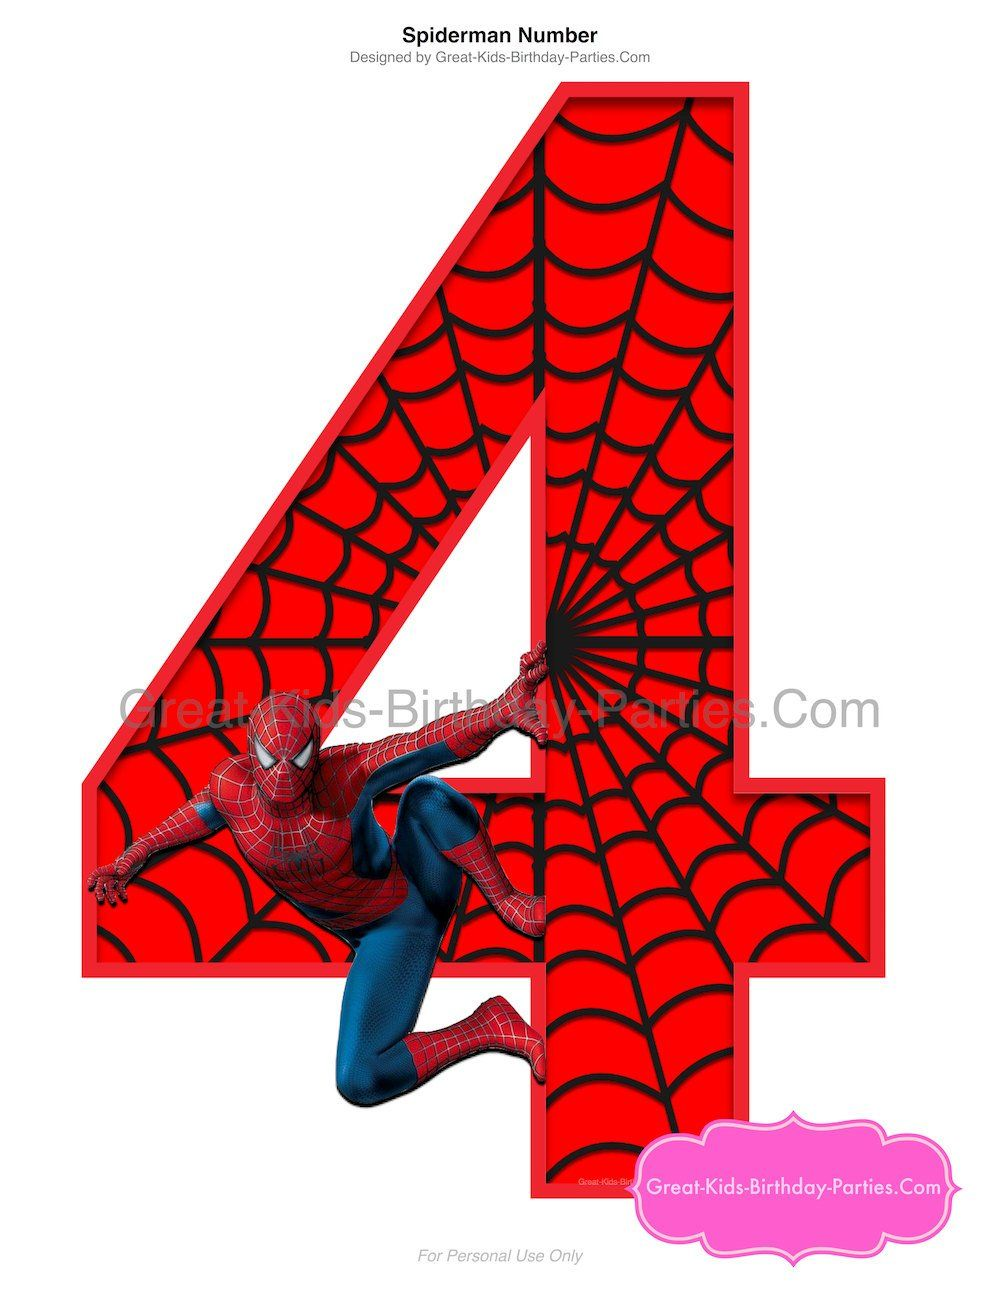 Spiderman Printable Number 4 Centerpiece Instant Download Etsy Spiderman Birthday Spiderman Party Spiderman Party Supplies